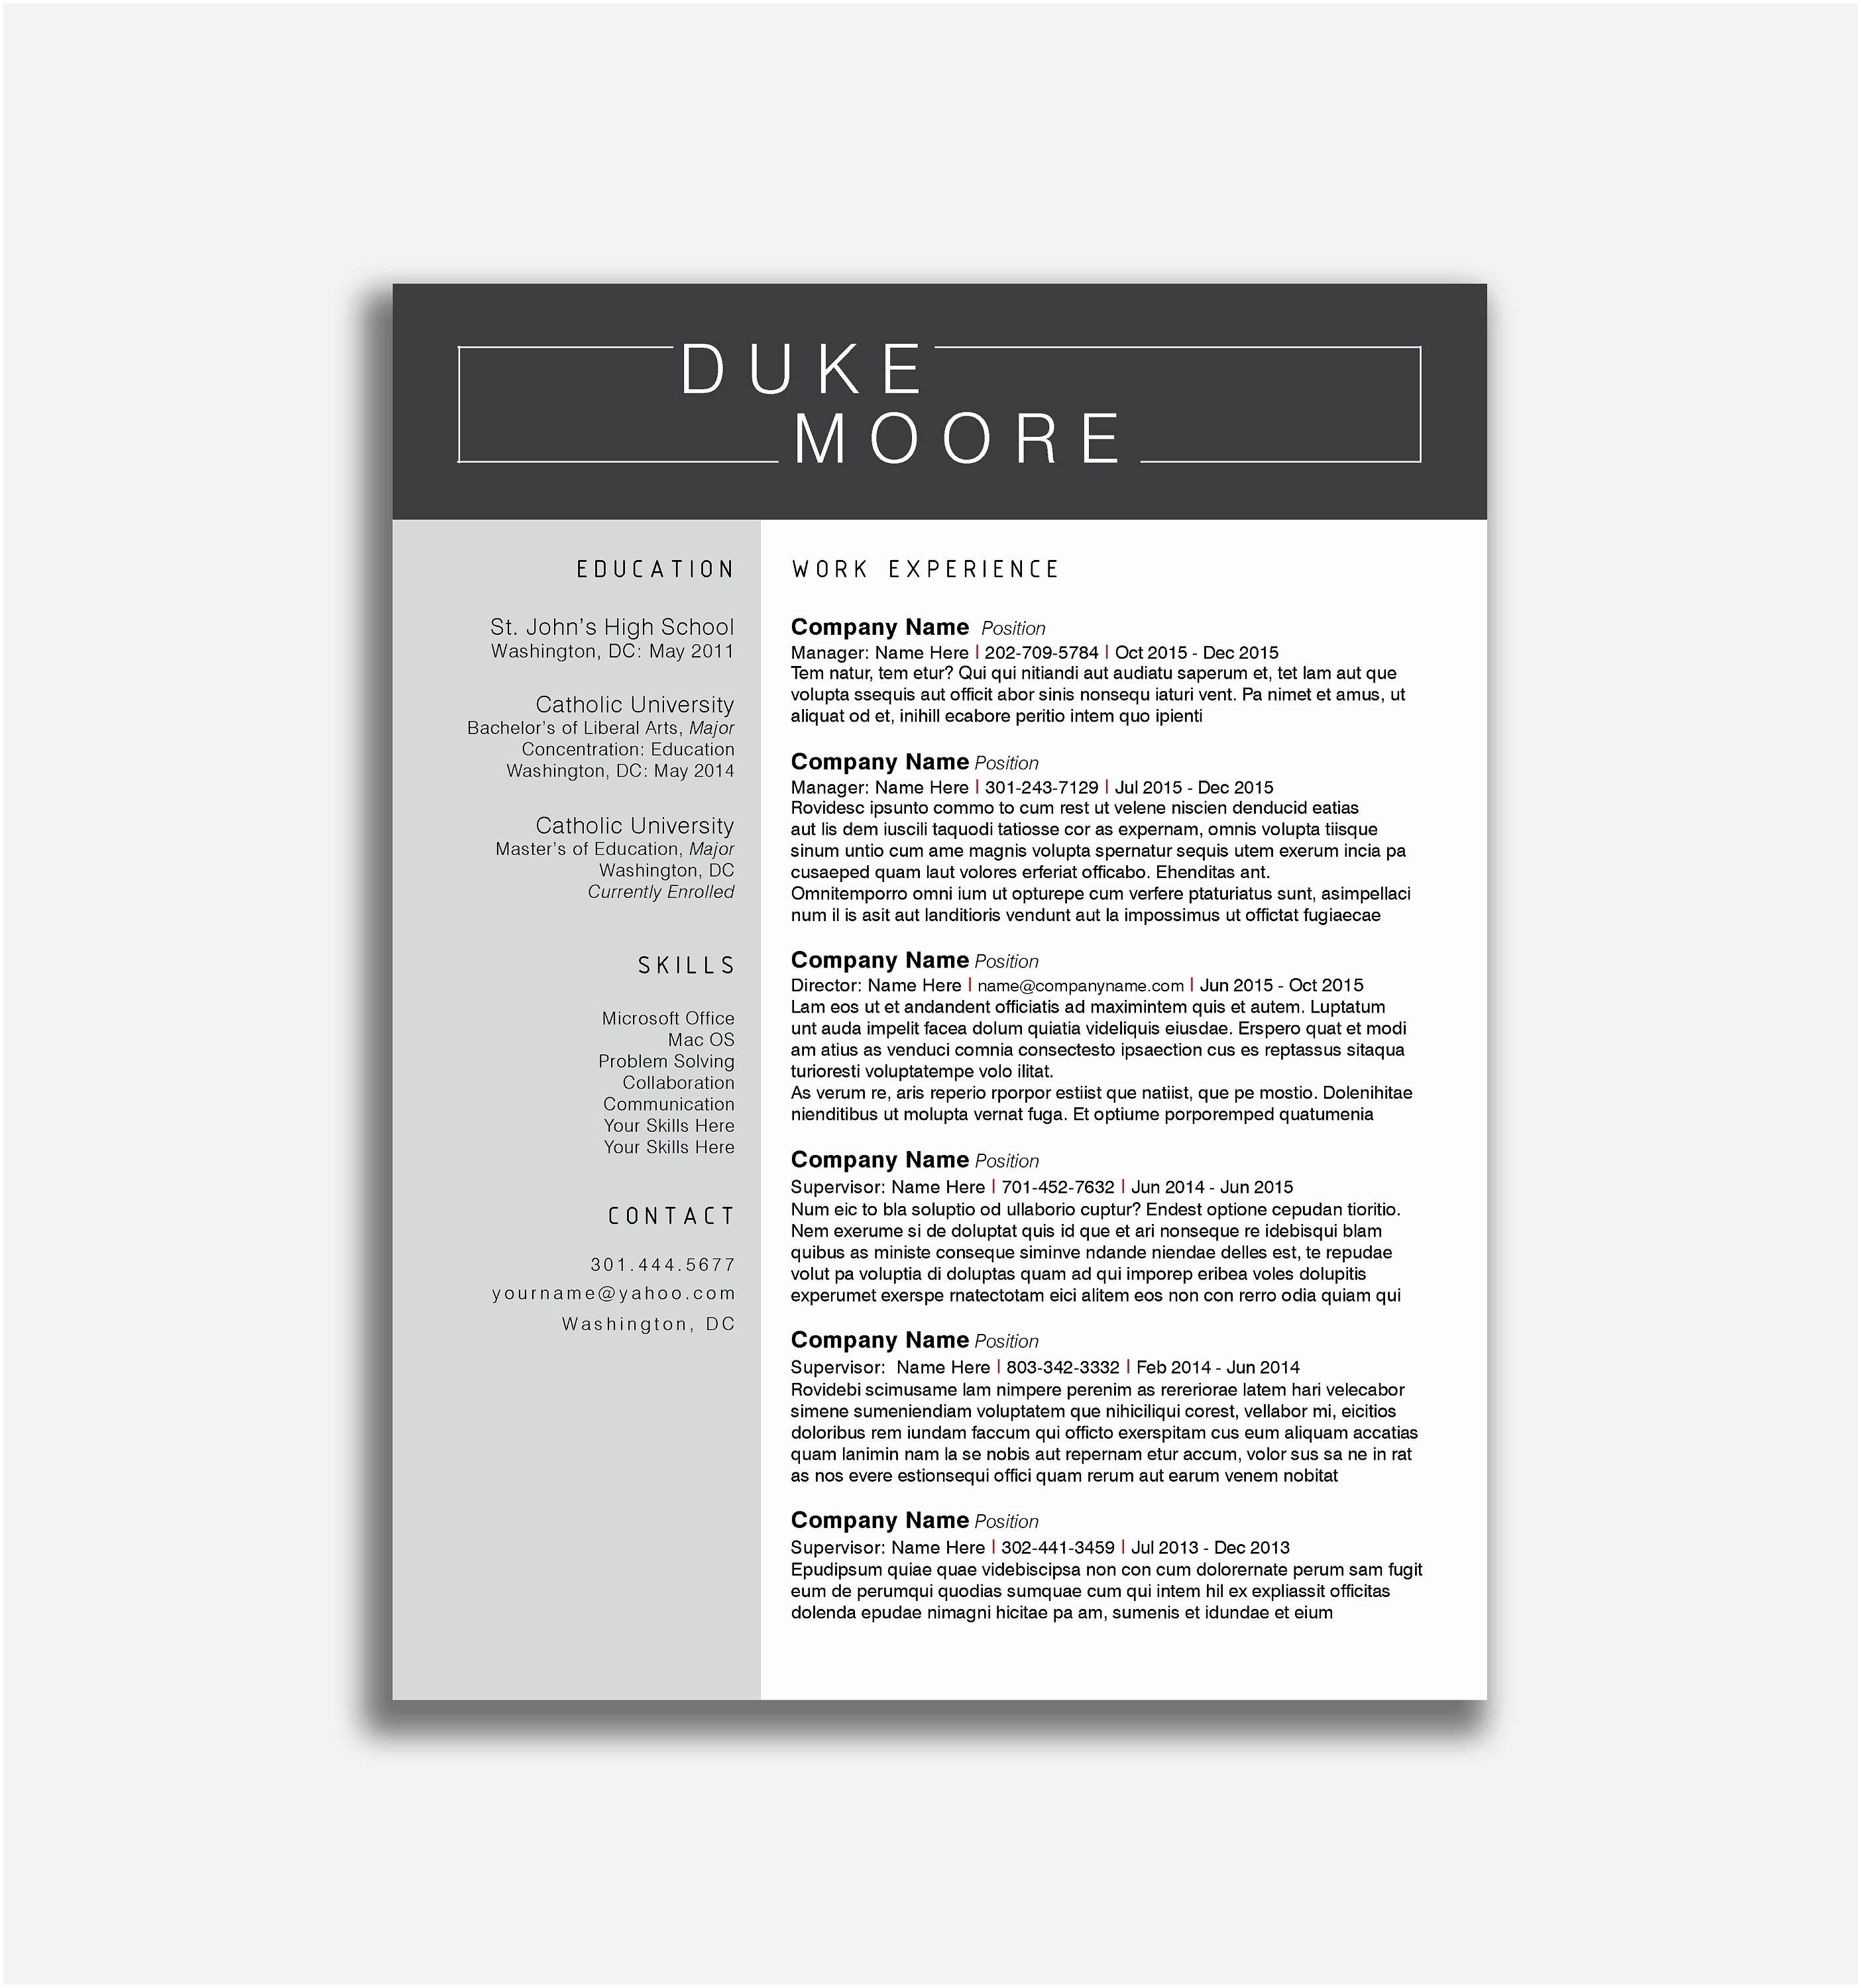 White Magazine File Word Document Templates – 30 Best Free Borders for Word Documents